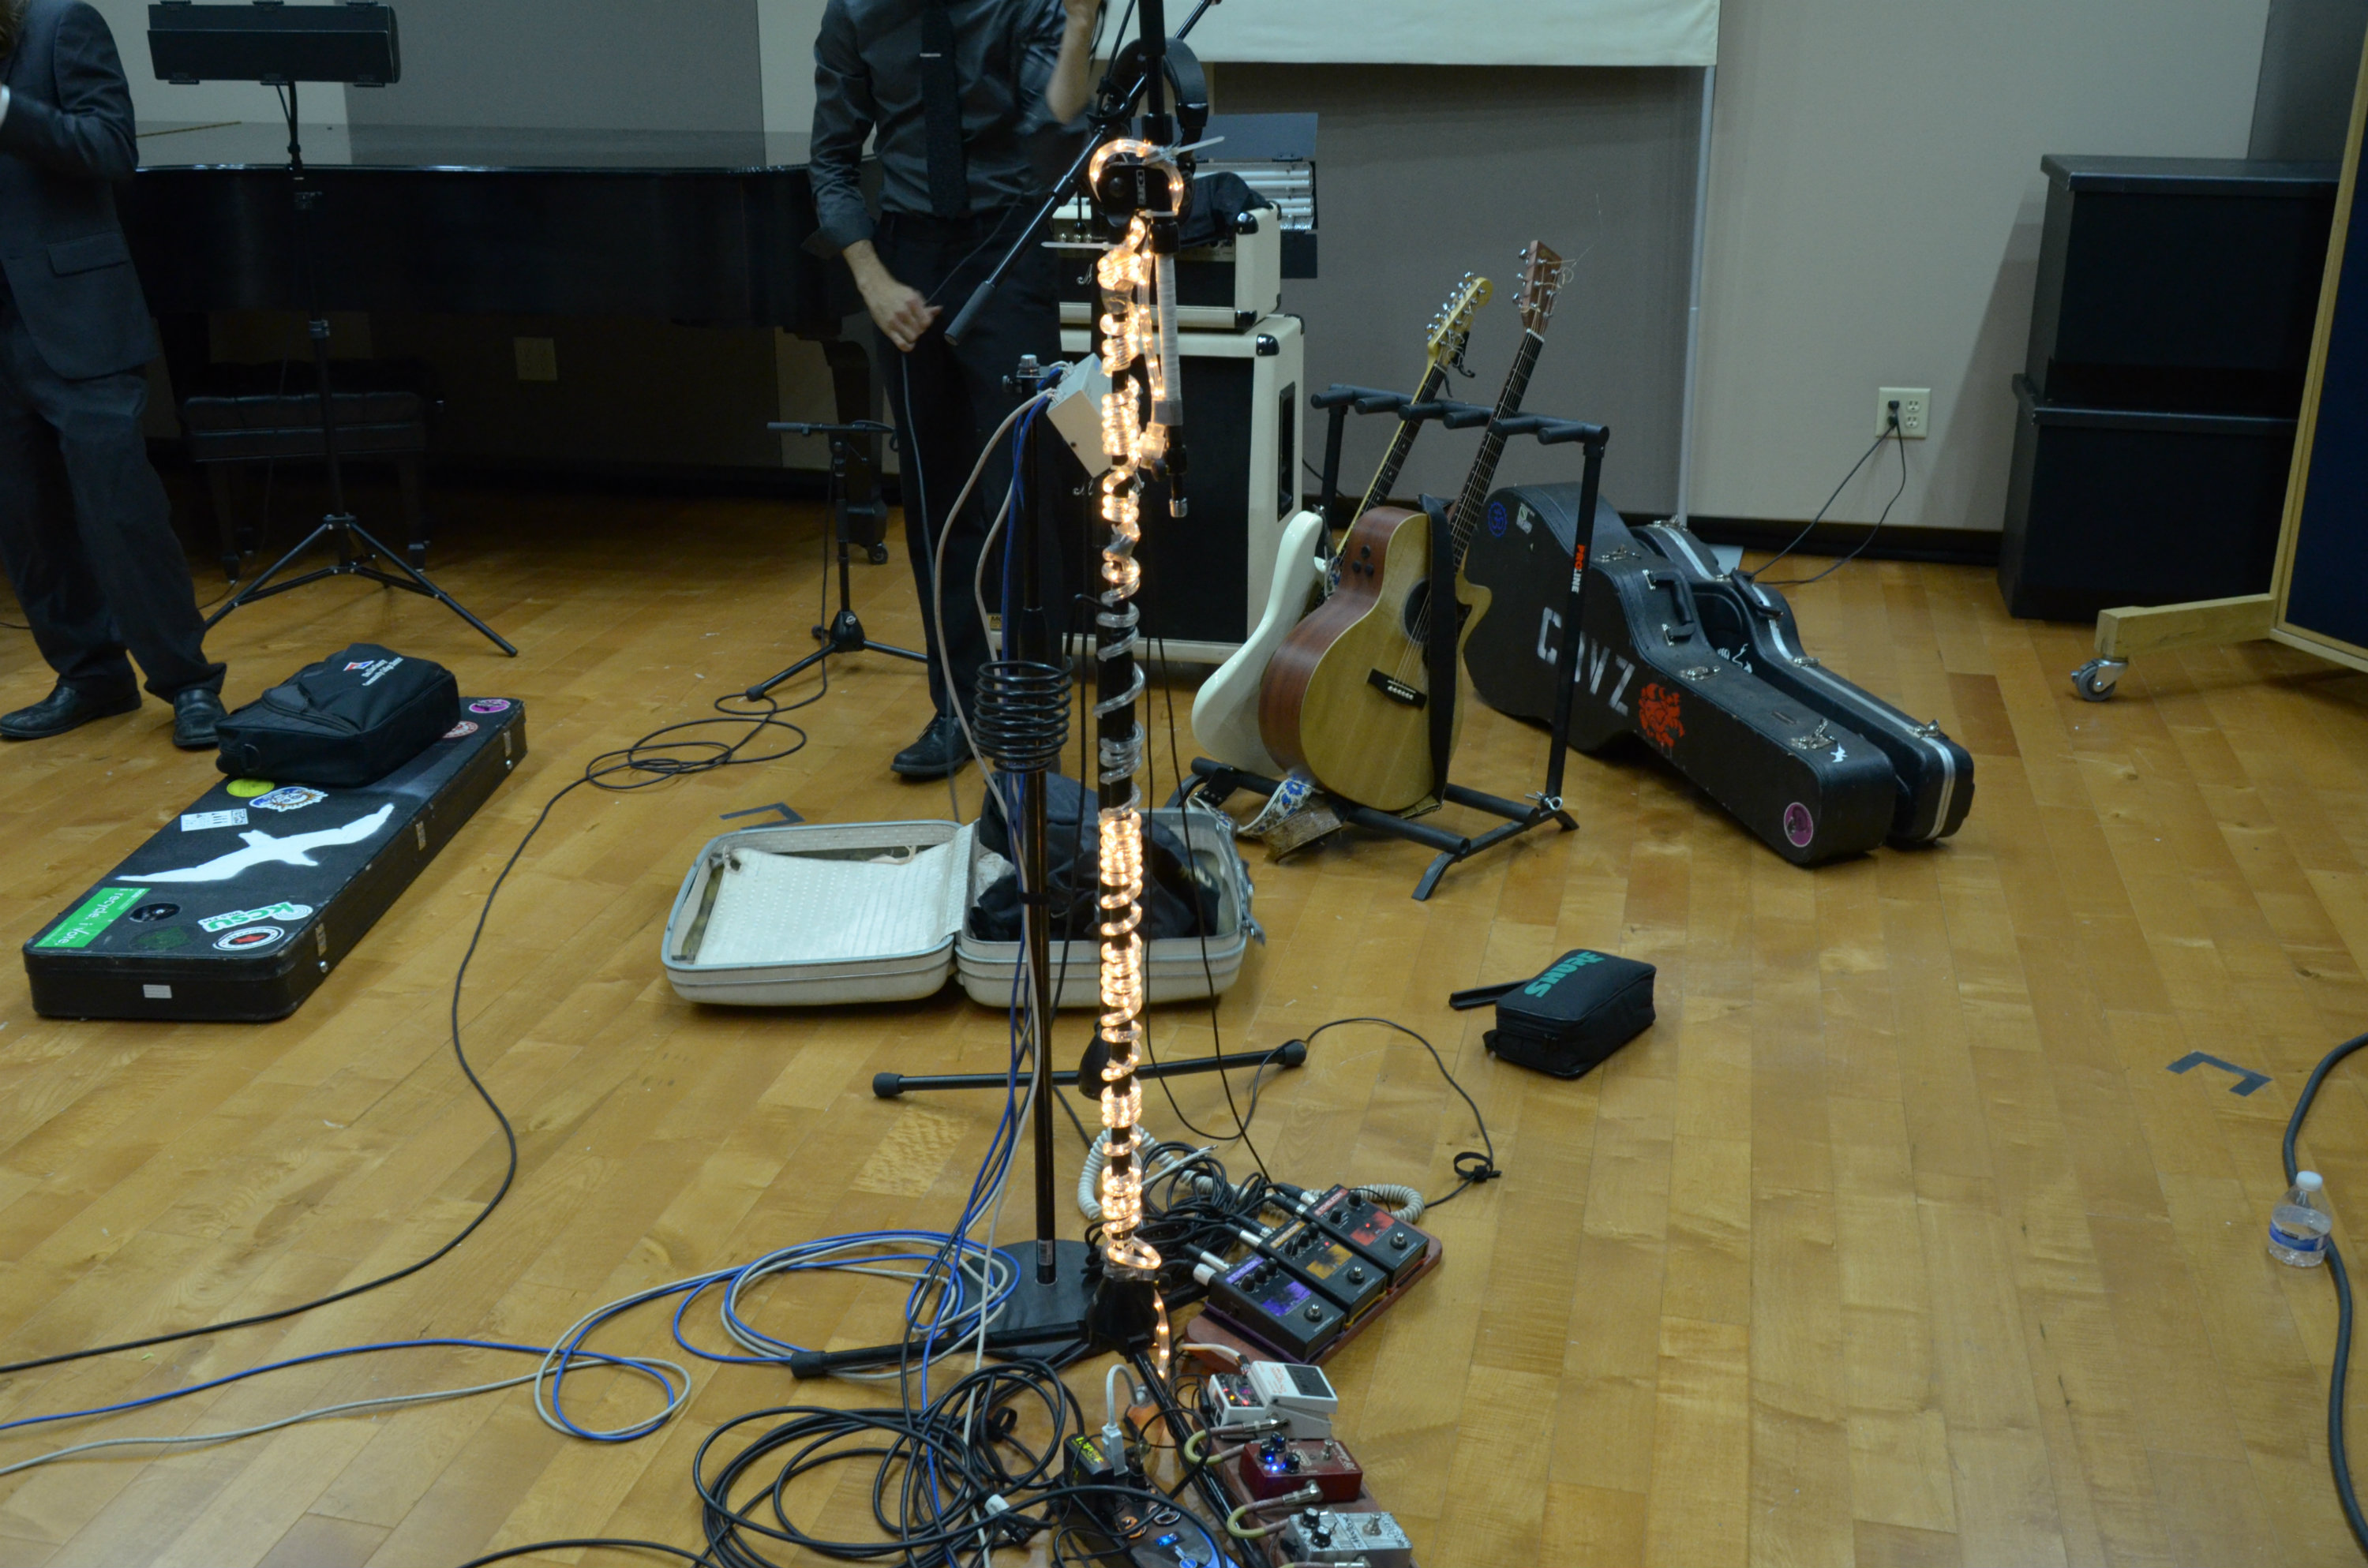 Photo: The Covz mic stand